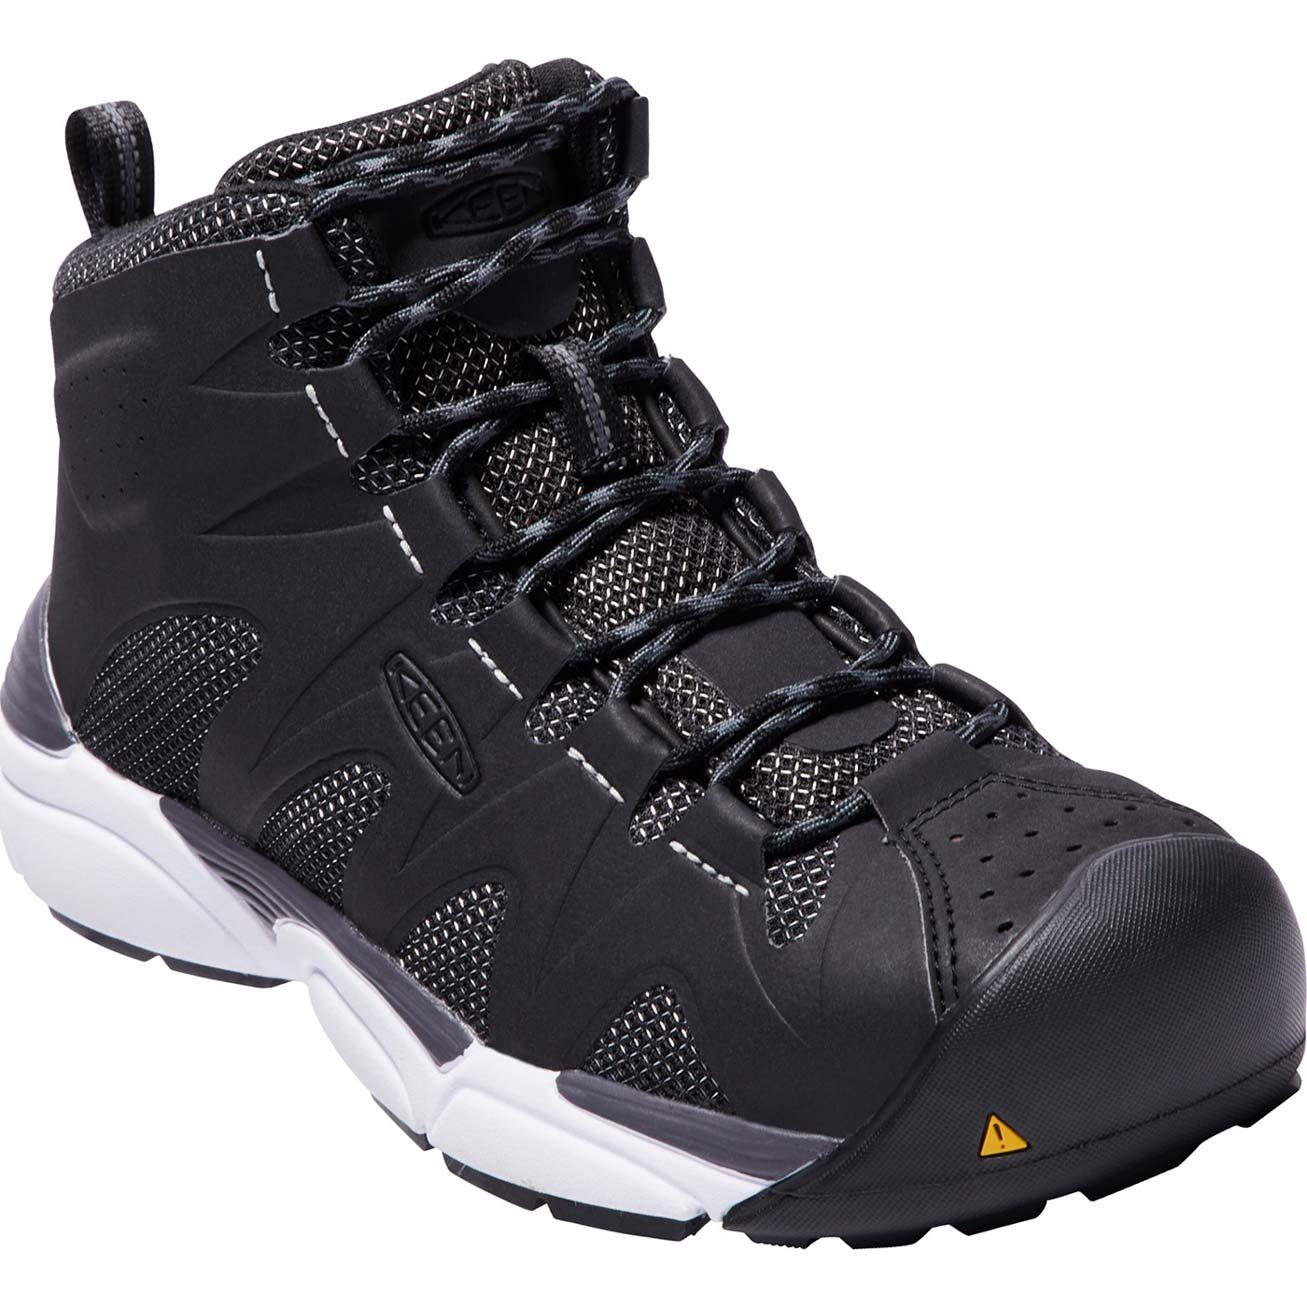 Men's KEEN Utility San Antonio Aluminum Toe Work Boots buy cheap with credit card Inexpensive cheap online outlet store best deals buy cheap sale o3XadUezC6